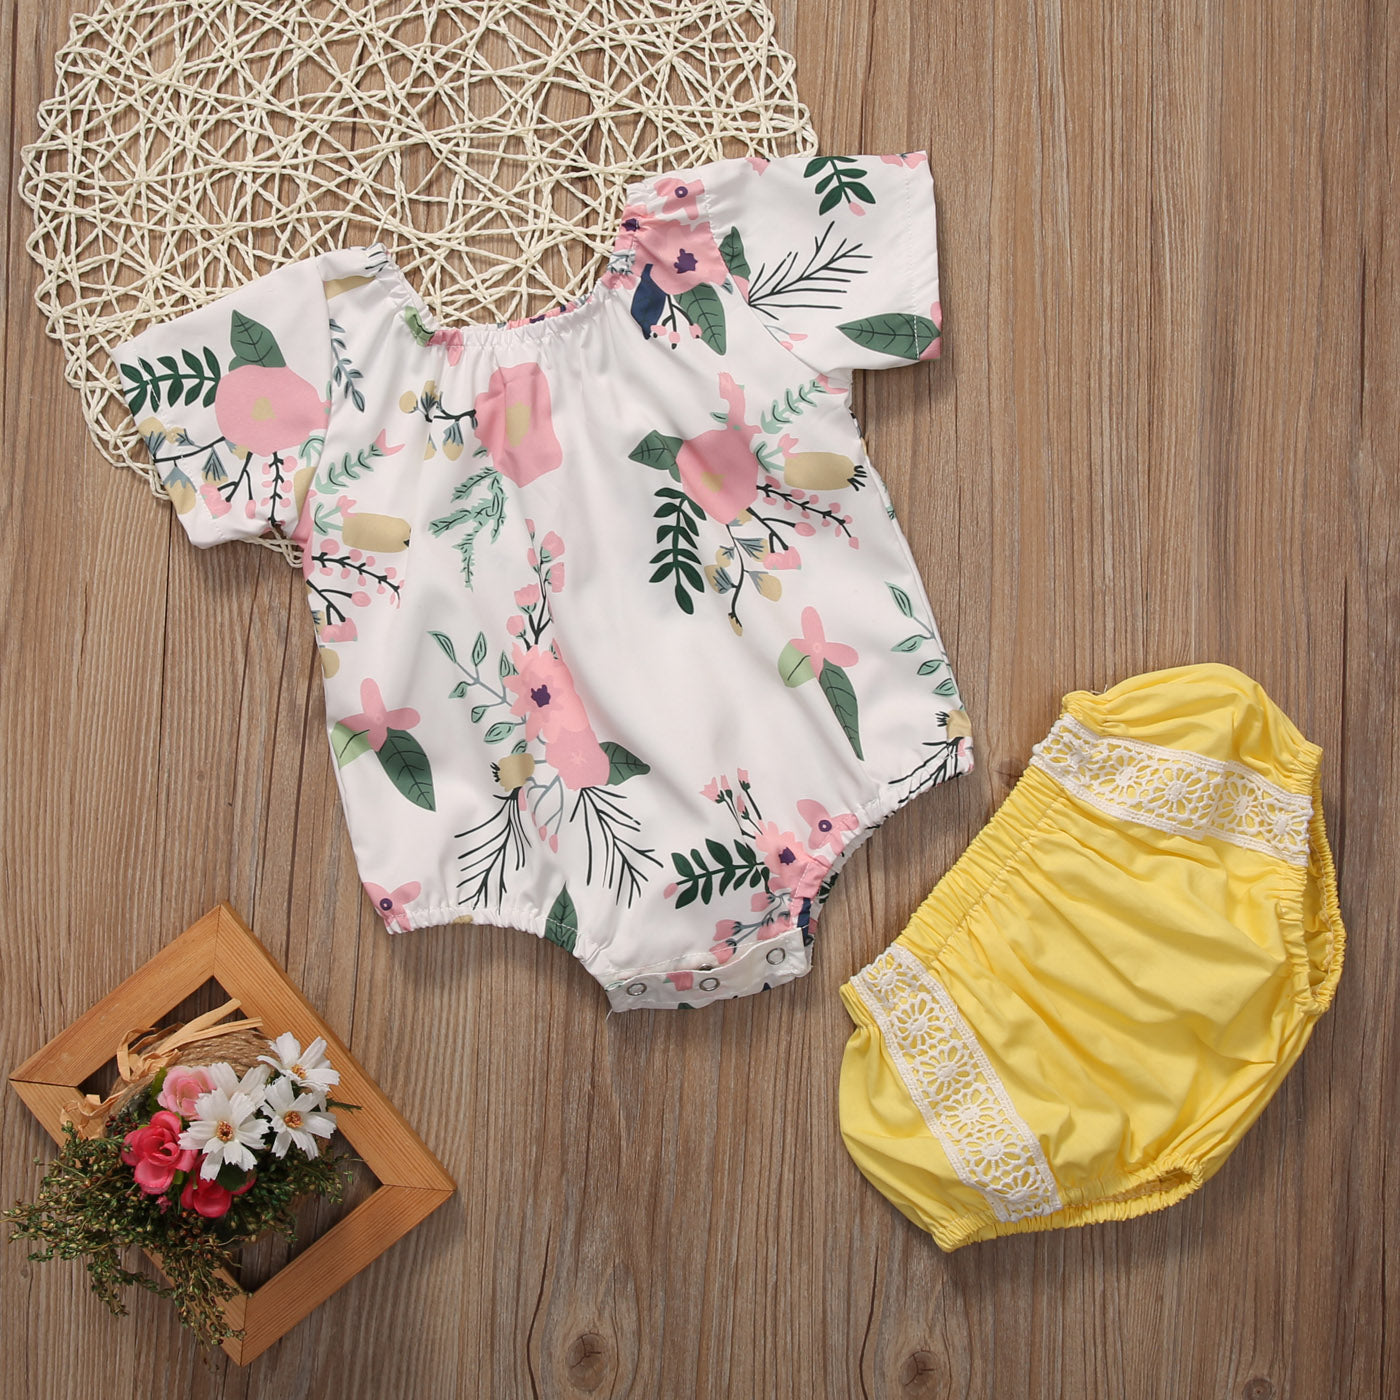 2 pcs Outfit with Floral Top and Yellow Shorts